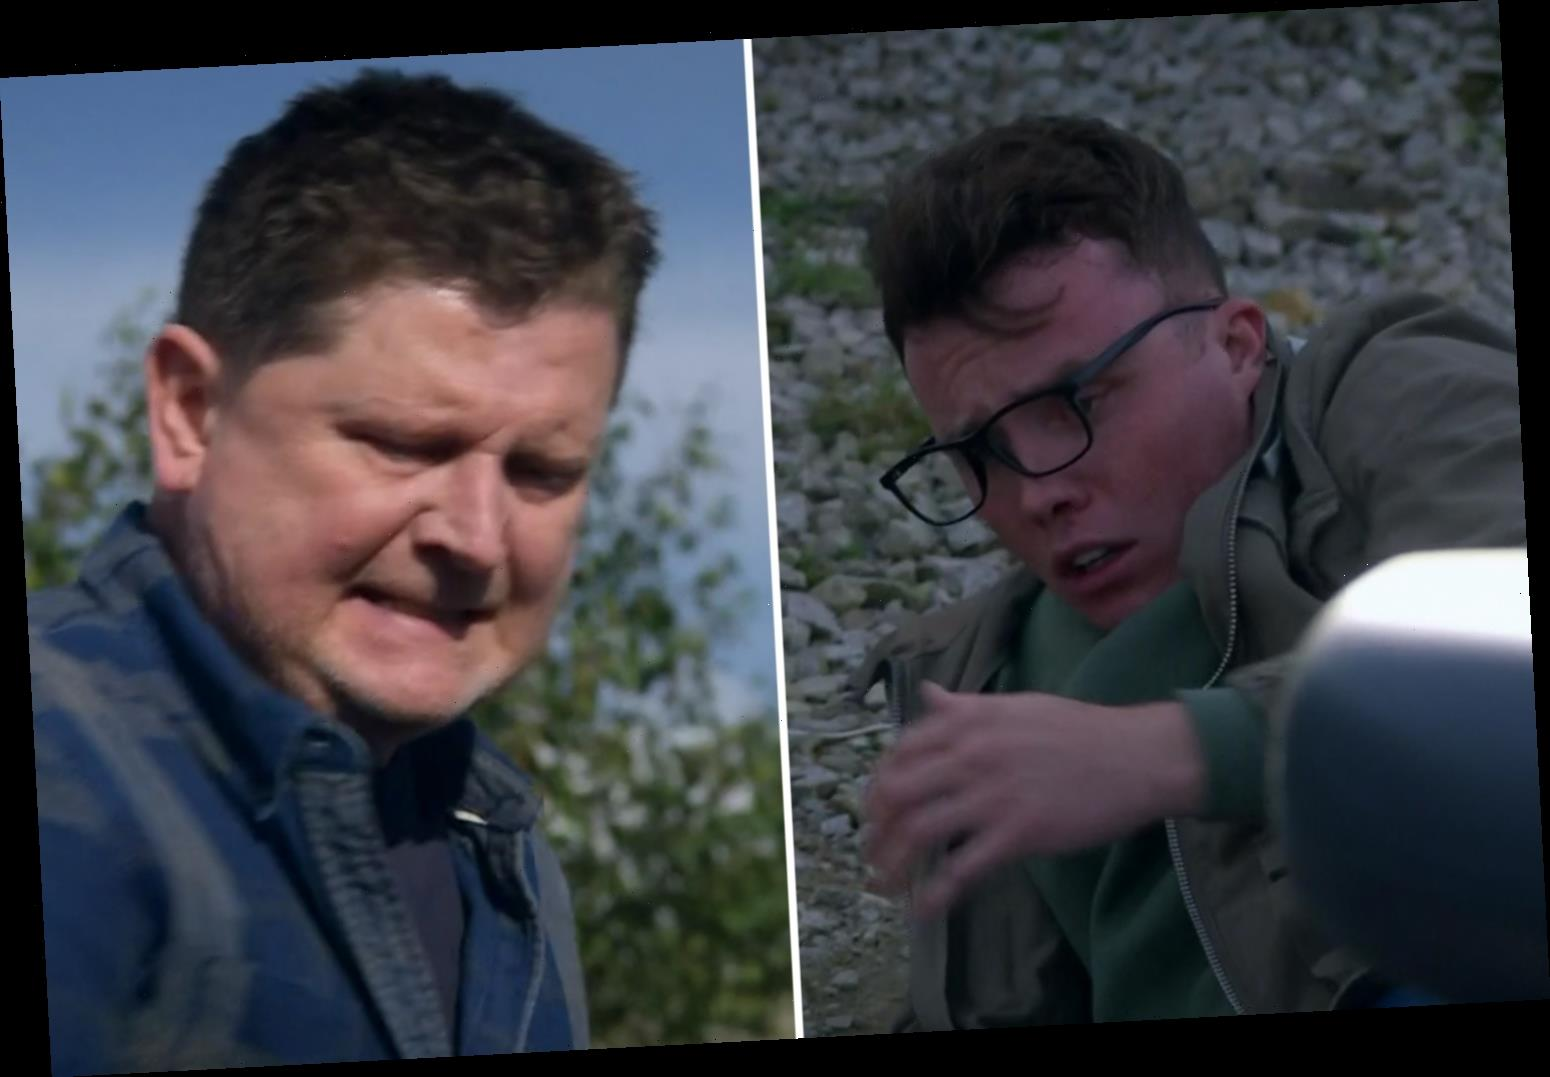 Emmerdale fans horrified as Paul brutally beats son Vinny after he confronts him about his gambling addiction